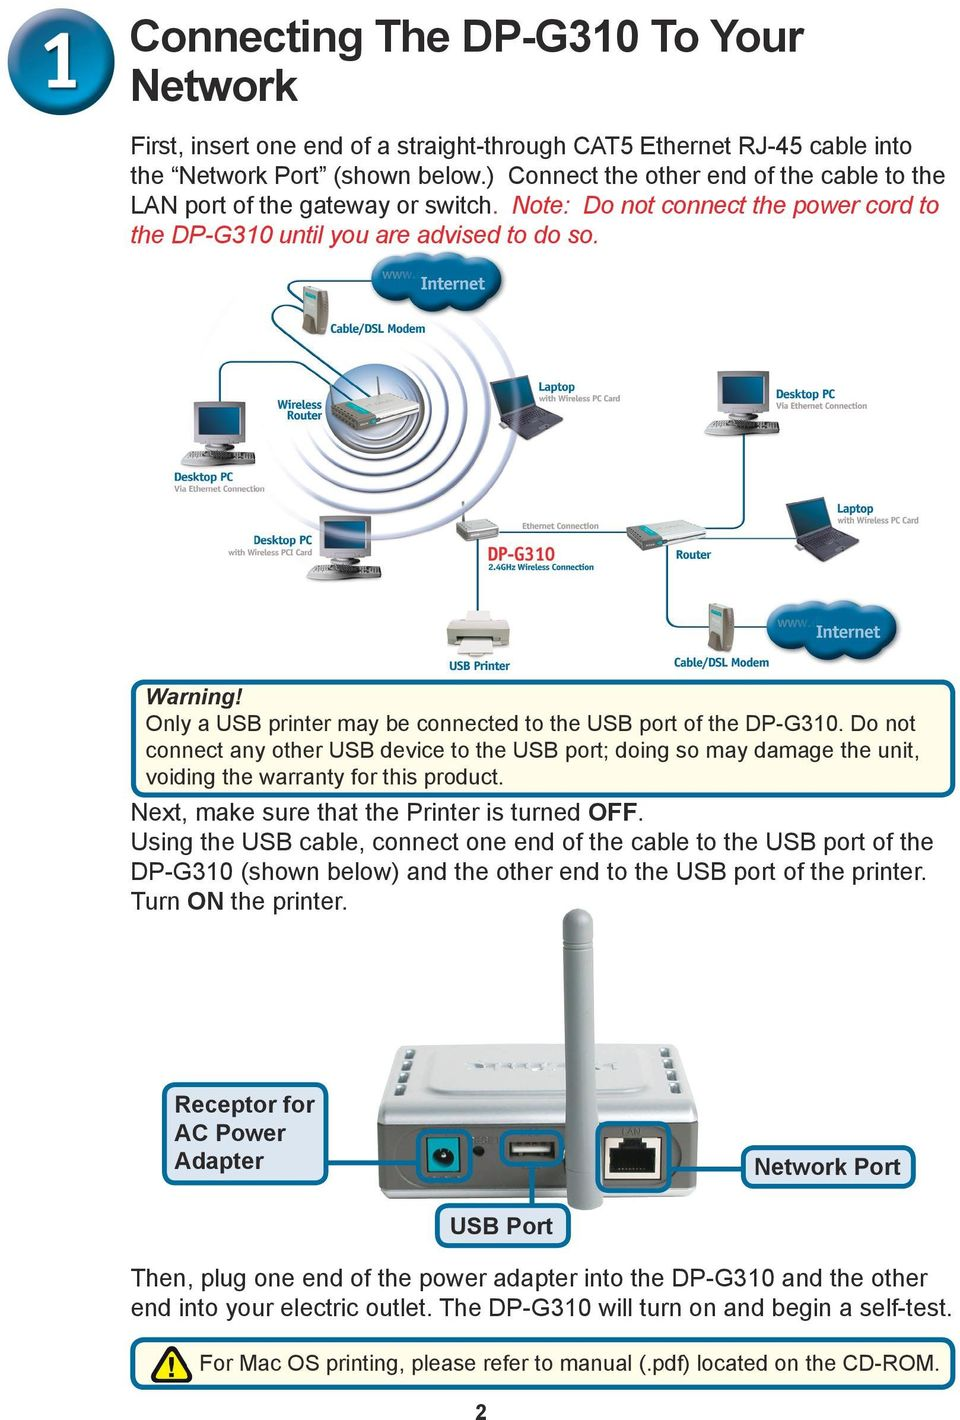 Only a USB printer may be connected to the USB port of the DP-G310. Do not connect any other USB device to the USB port; doing so may damage the unit, voiding the warranty for this product.